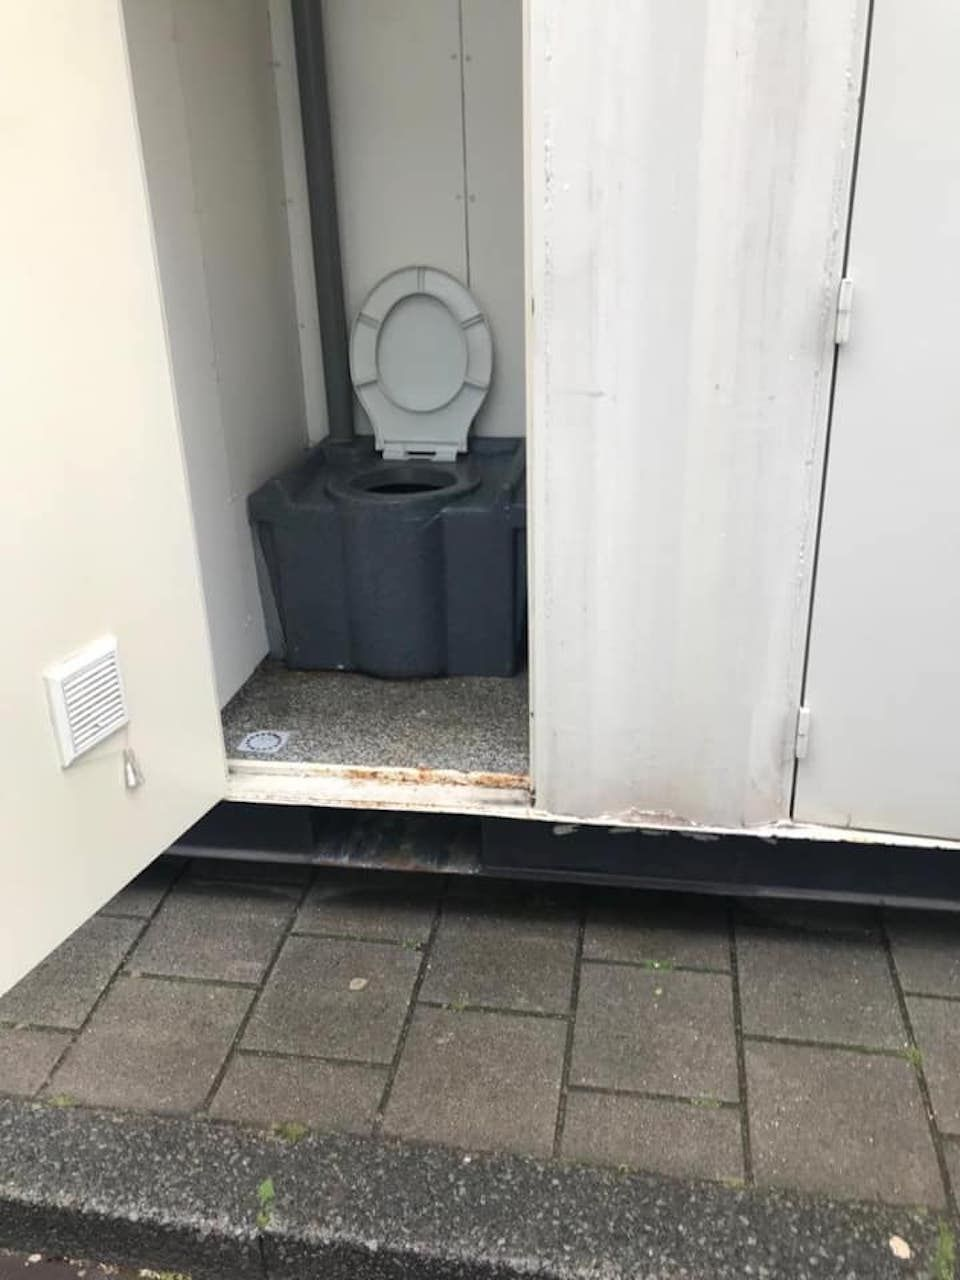 Airbnb shipping container scam, view of the toilet